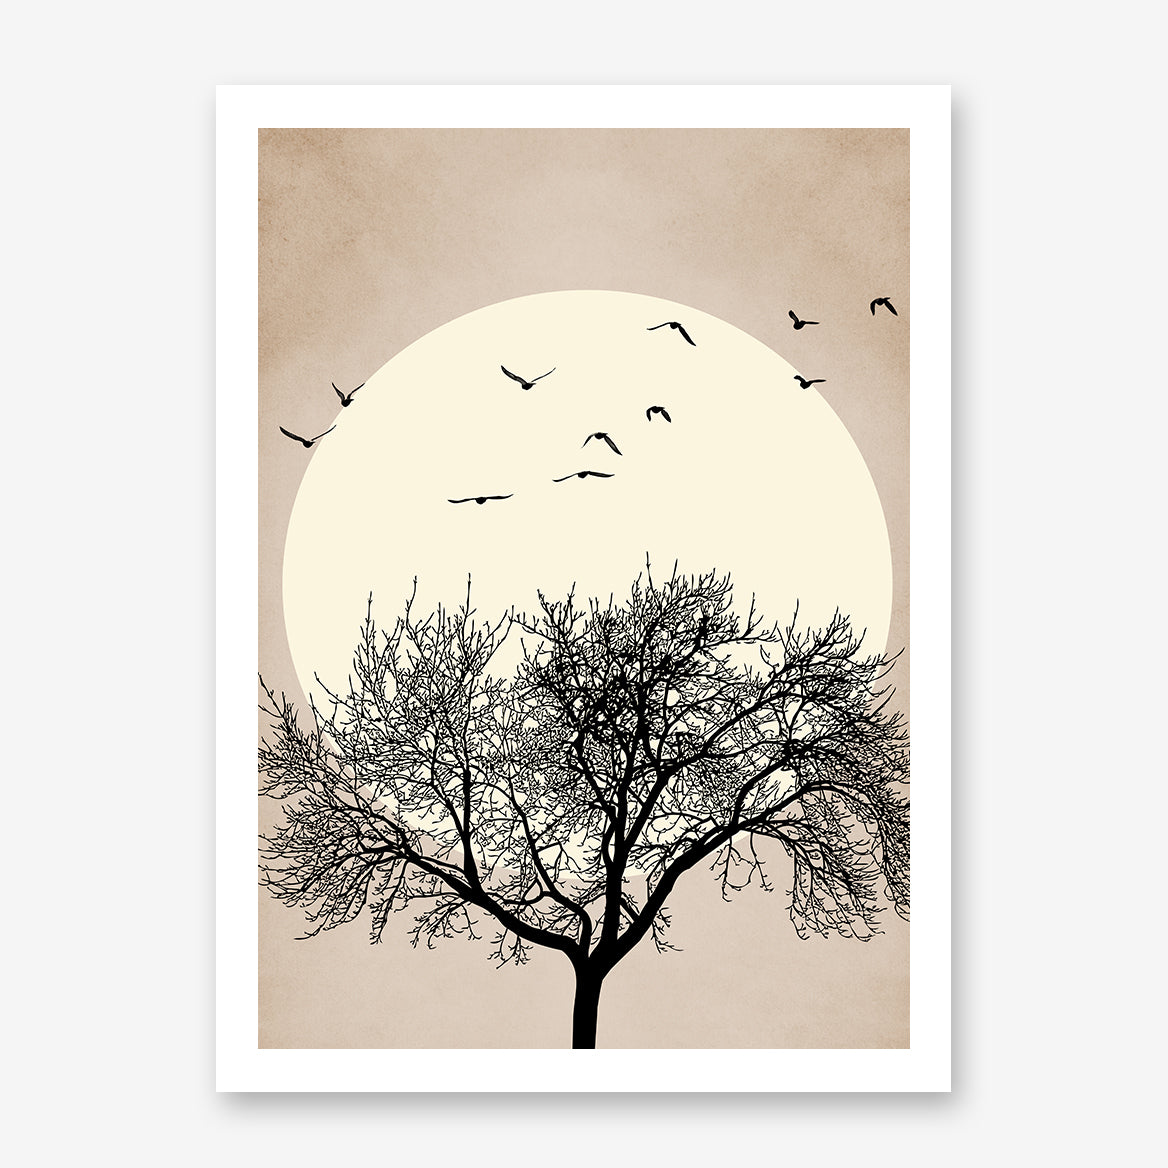 Illustration print by Kubistika, with black tree and birds, and beige sun, on textured light brown  background